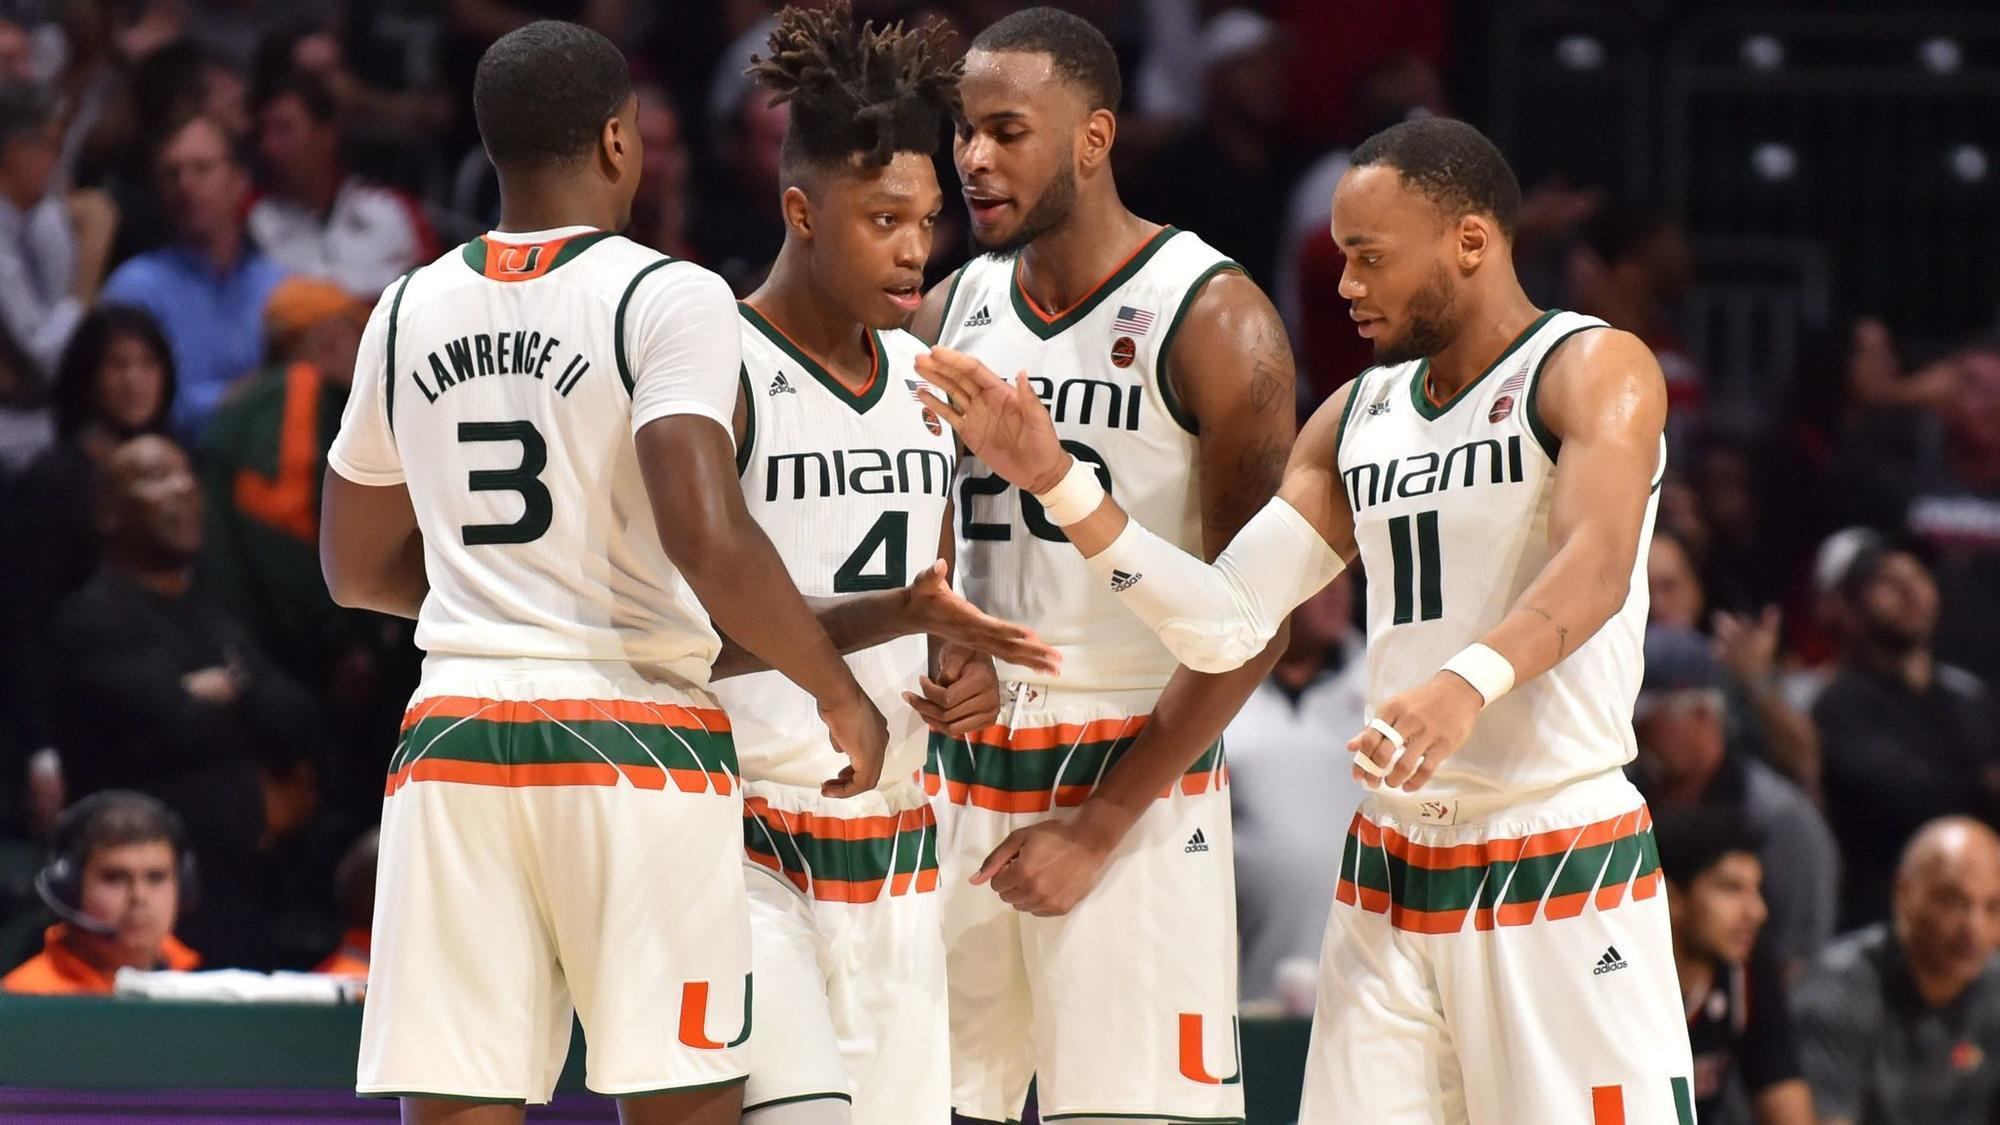 miami hurricanes basketball coach jim larranaga feels nba draft